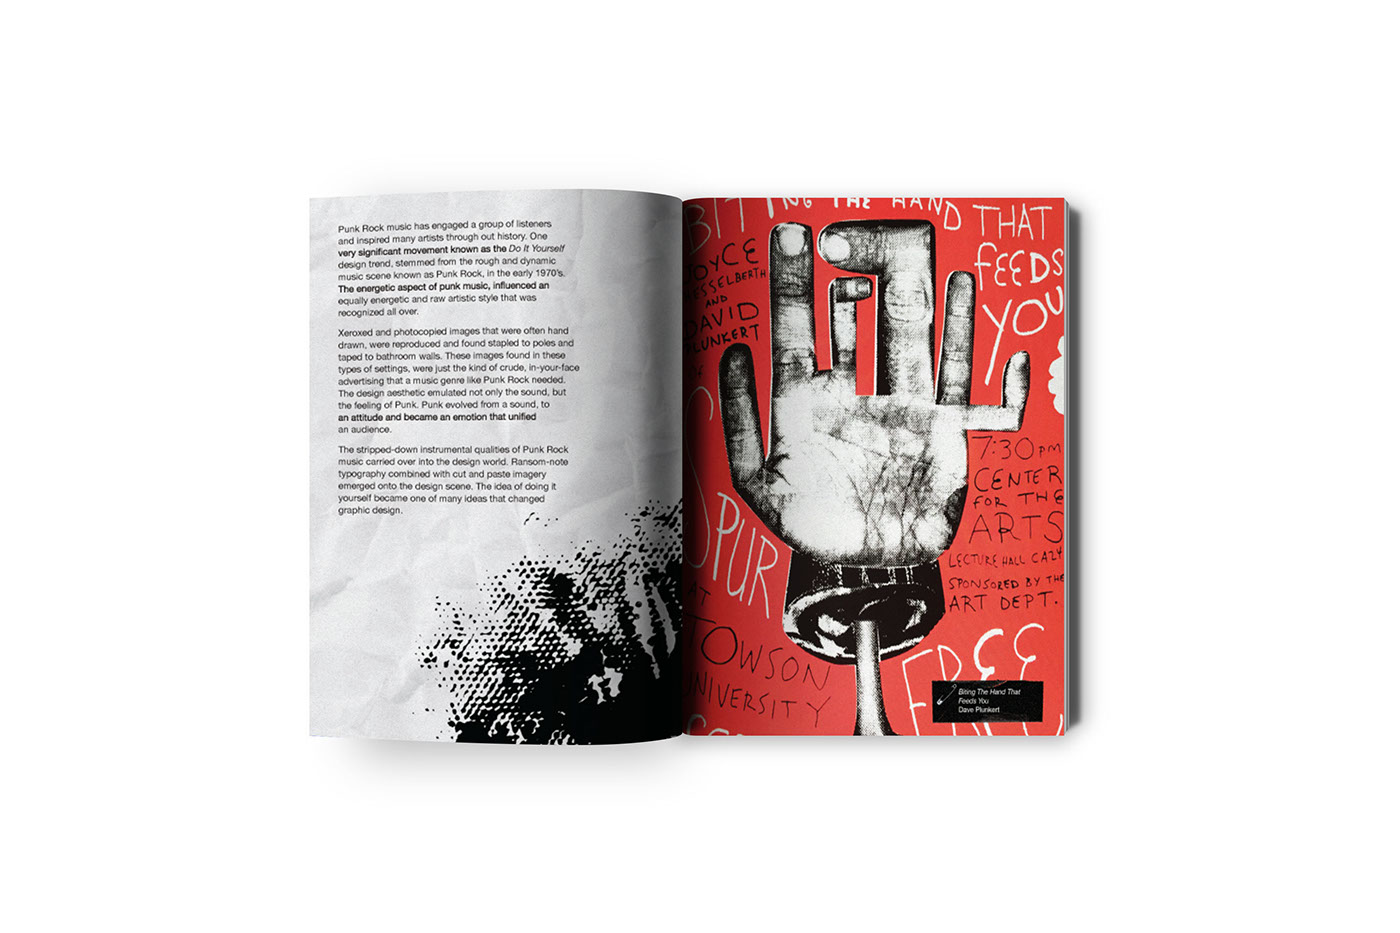 Obsession book on behance do it yourself design trend i created all front matter using duct tape paint and photoshop the images i have chosen were selected from graphic design solutioingenieria Choice Image